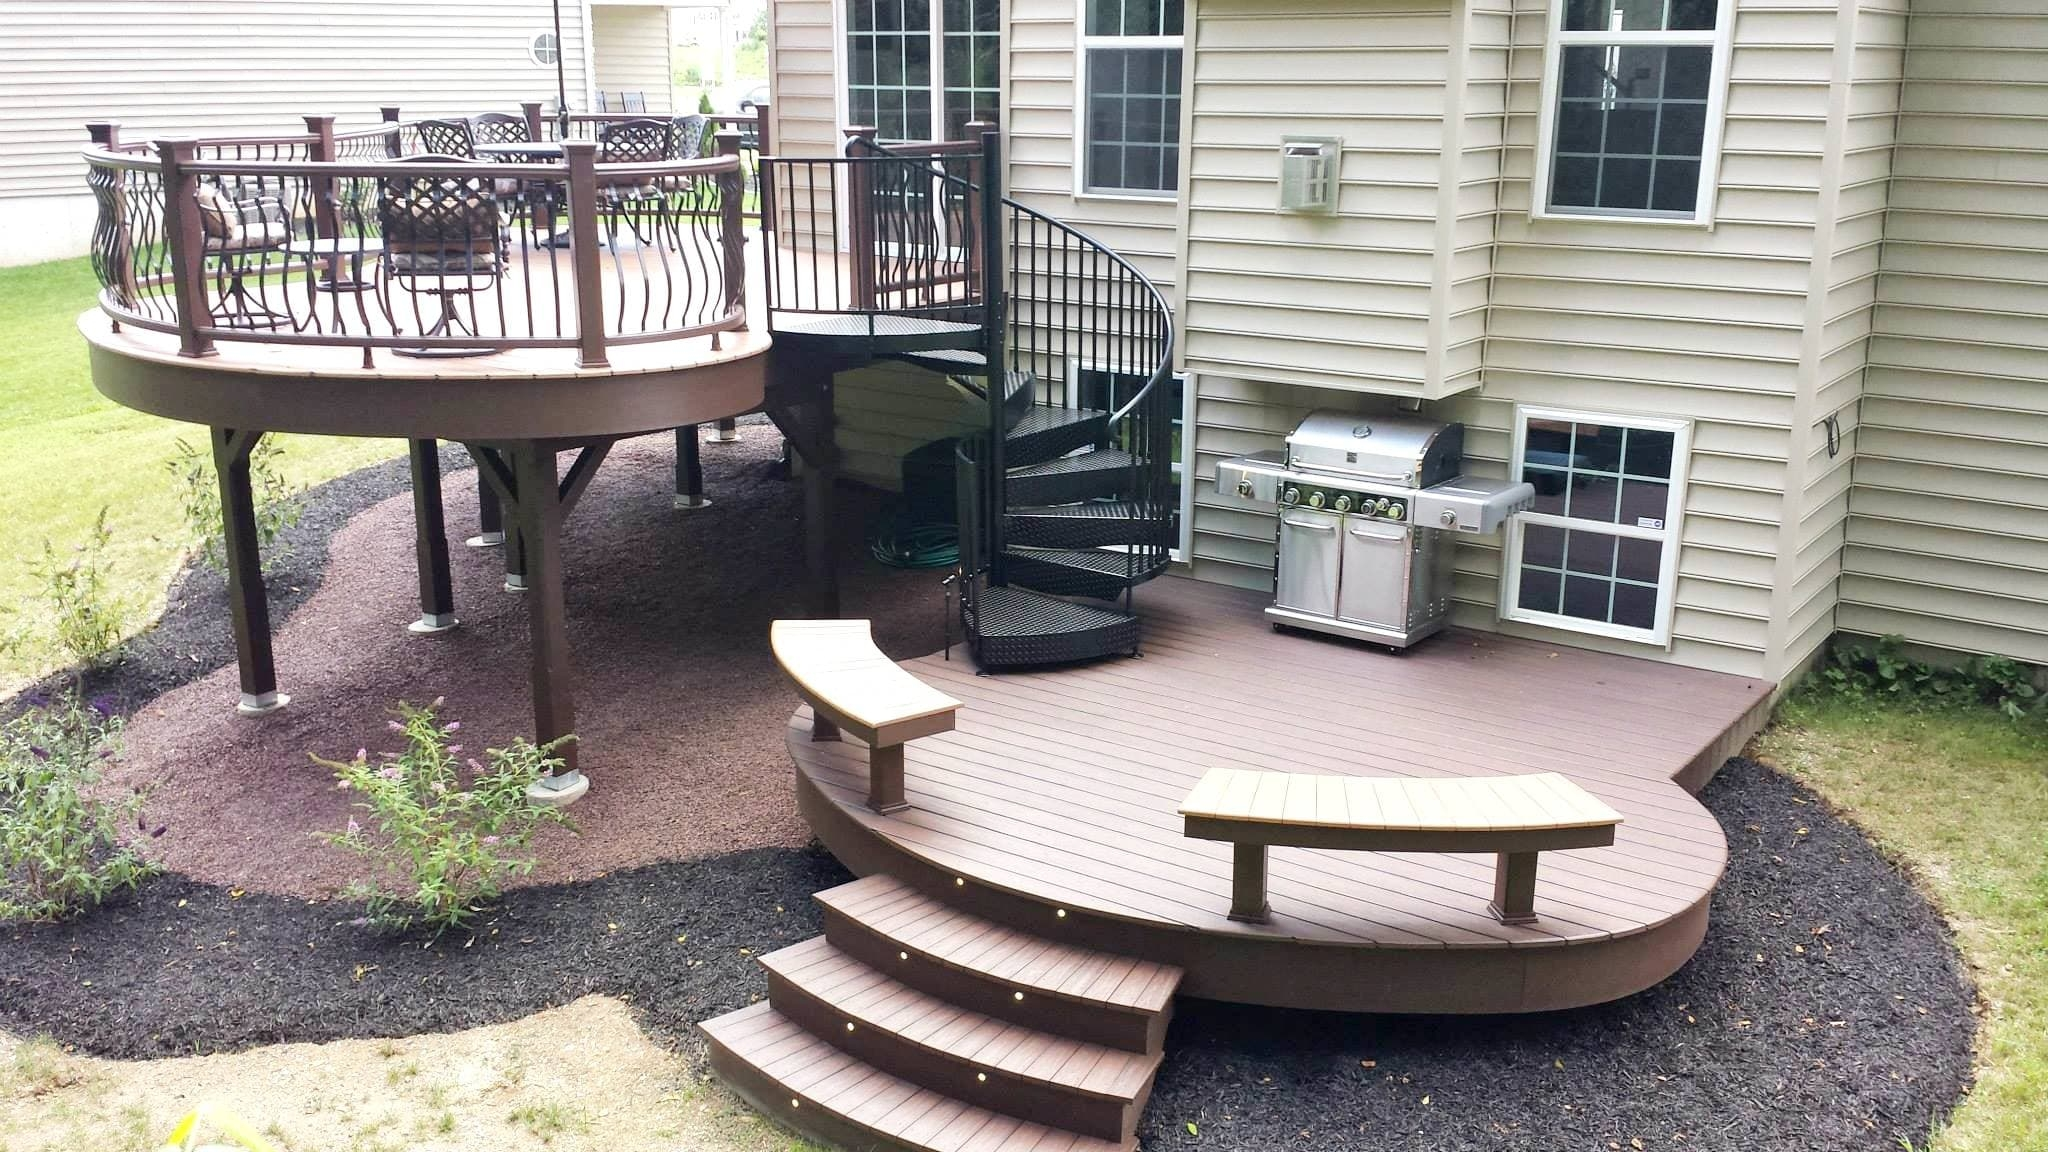 Five Weekend Diy Deck Projects Salter Spiral Stair | Spiral Staircase For Outside Deck | Iron | Custom | Double Spiral | Railing | Portable Rectangular Concrete